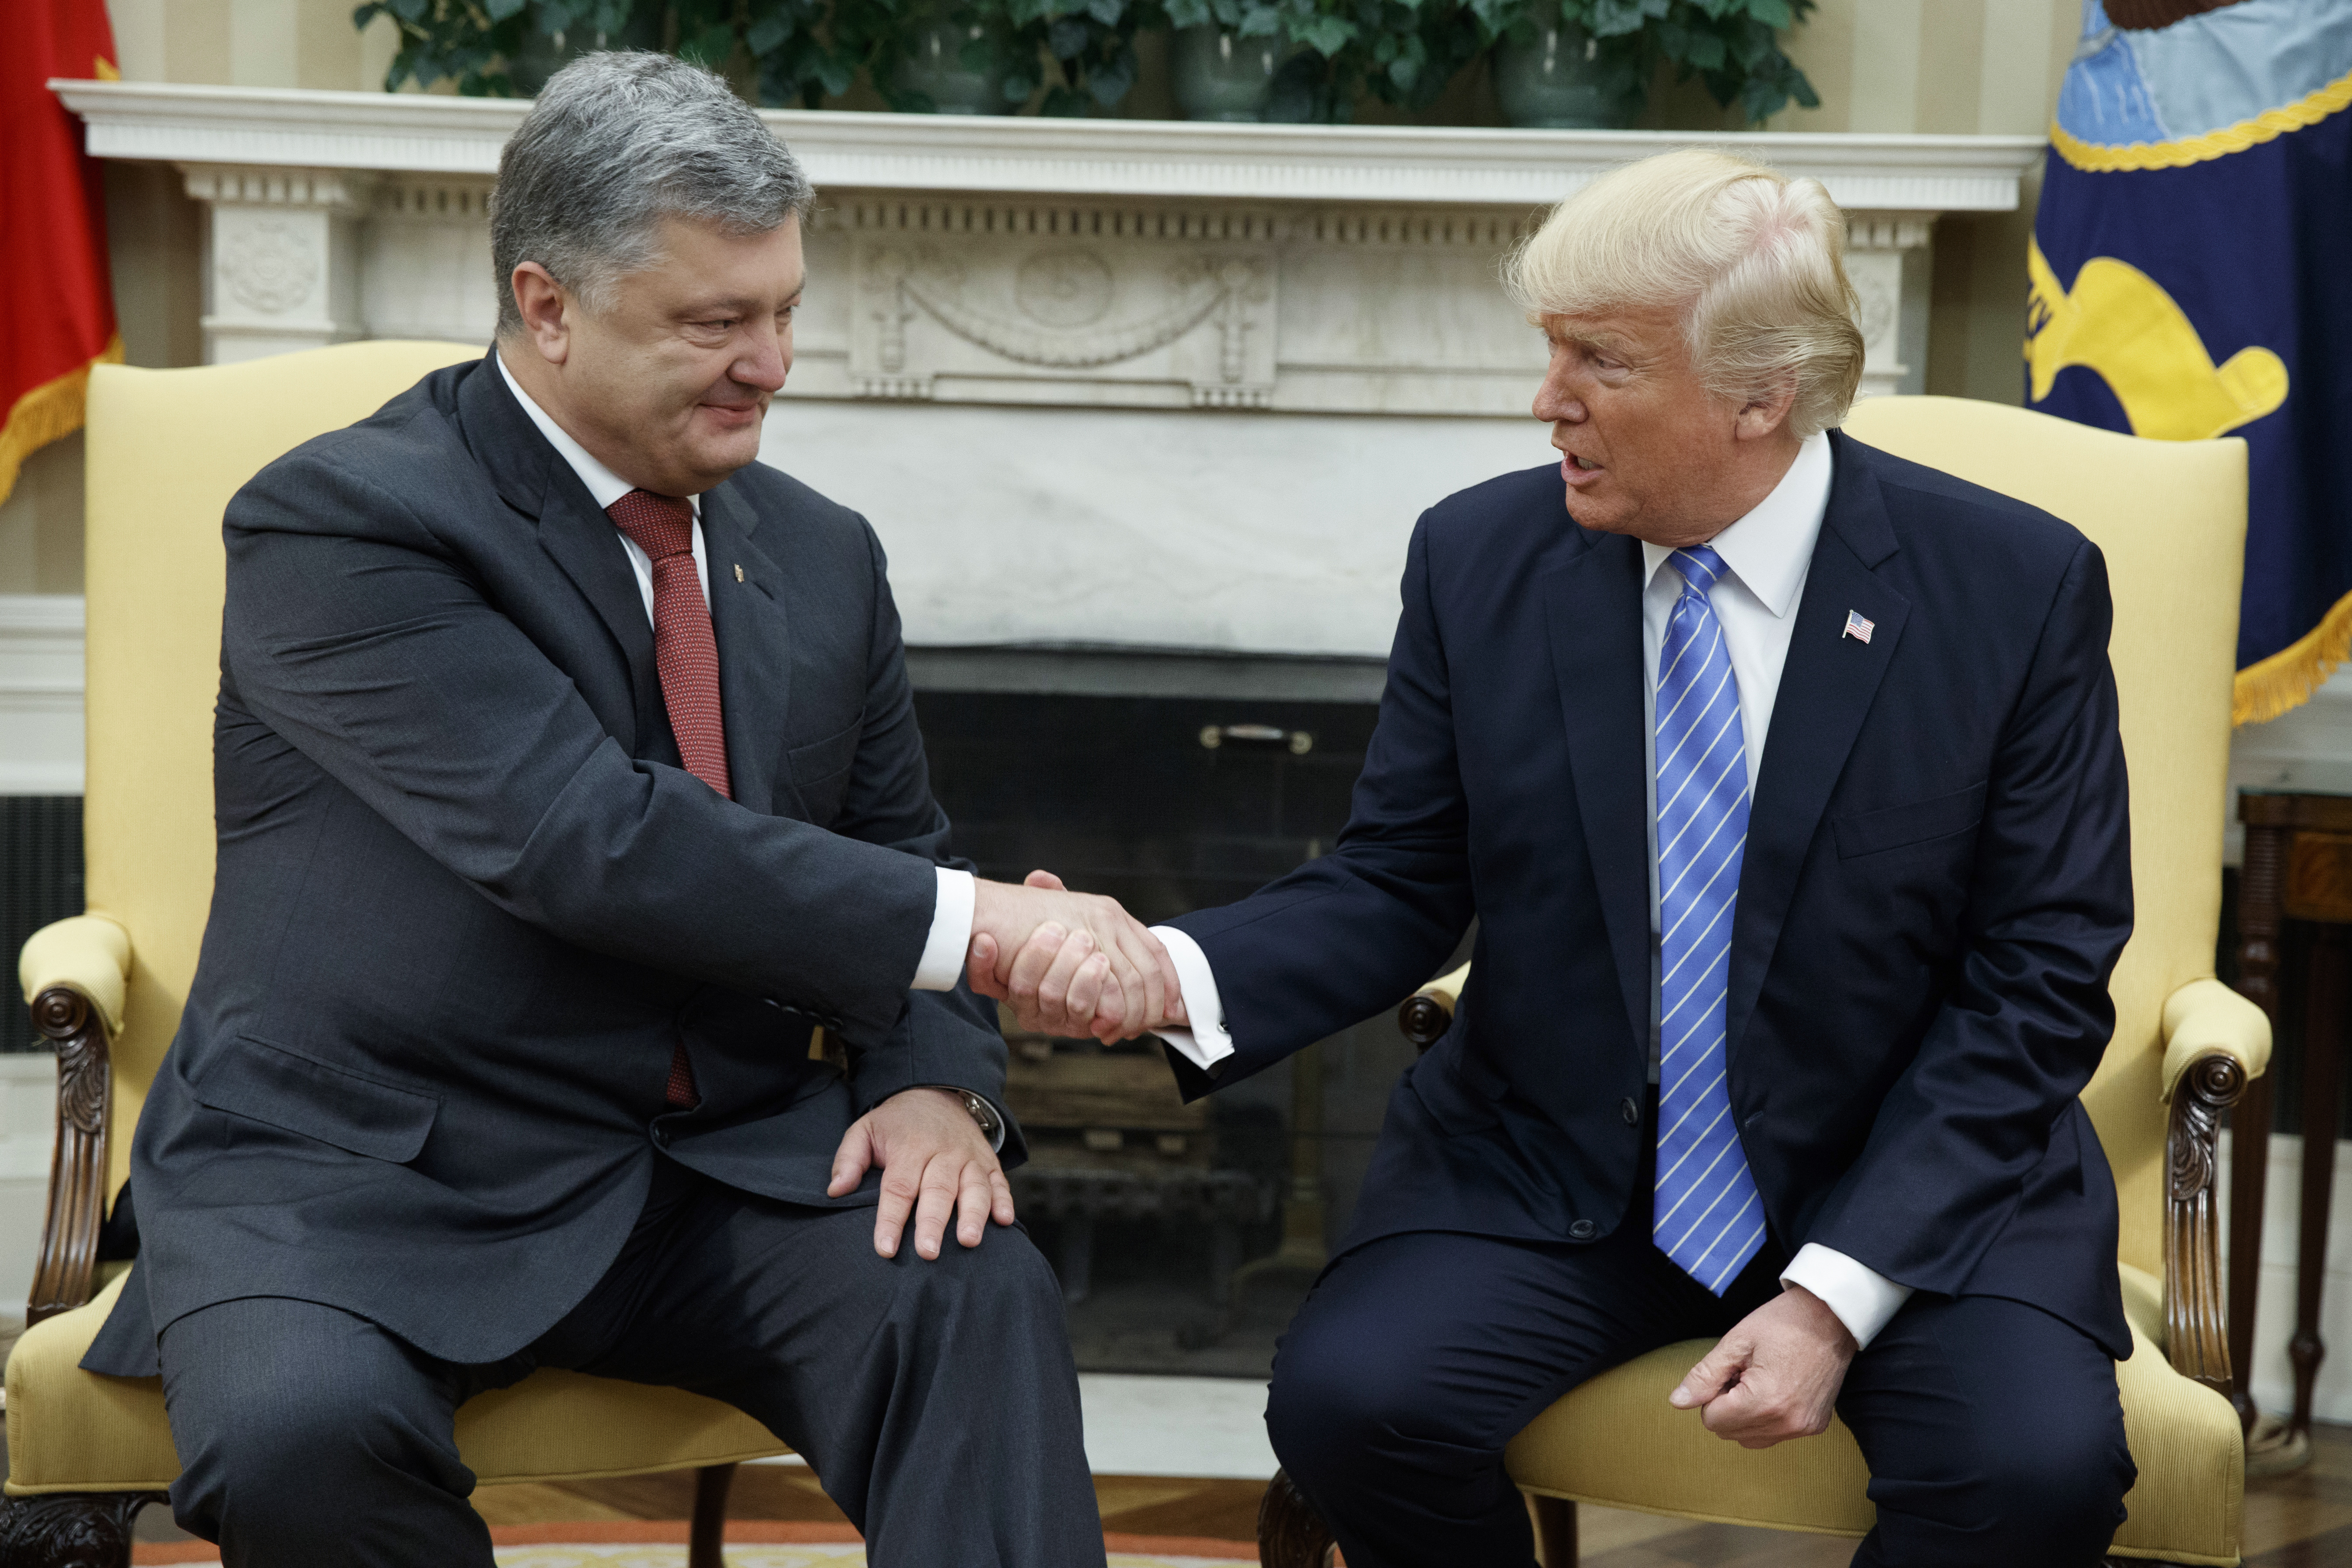 FILE - In this June 20, 2017, file photo, President Donald Trump shakes hands with Ukrainian President Petro Poroshenko during a meeting in the Oval Office of the White House in Washington. Seeking leverage with Russia, the Trump administration has reopened consideration of long-rejected plans to give Ukraine lethal weapons, even if that would plunge the United States deeper into the former Soviet republic's conflict. (AP Photo/Evan Vucci, File)